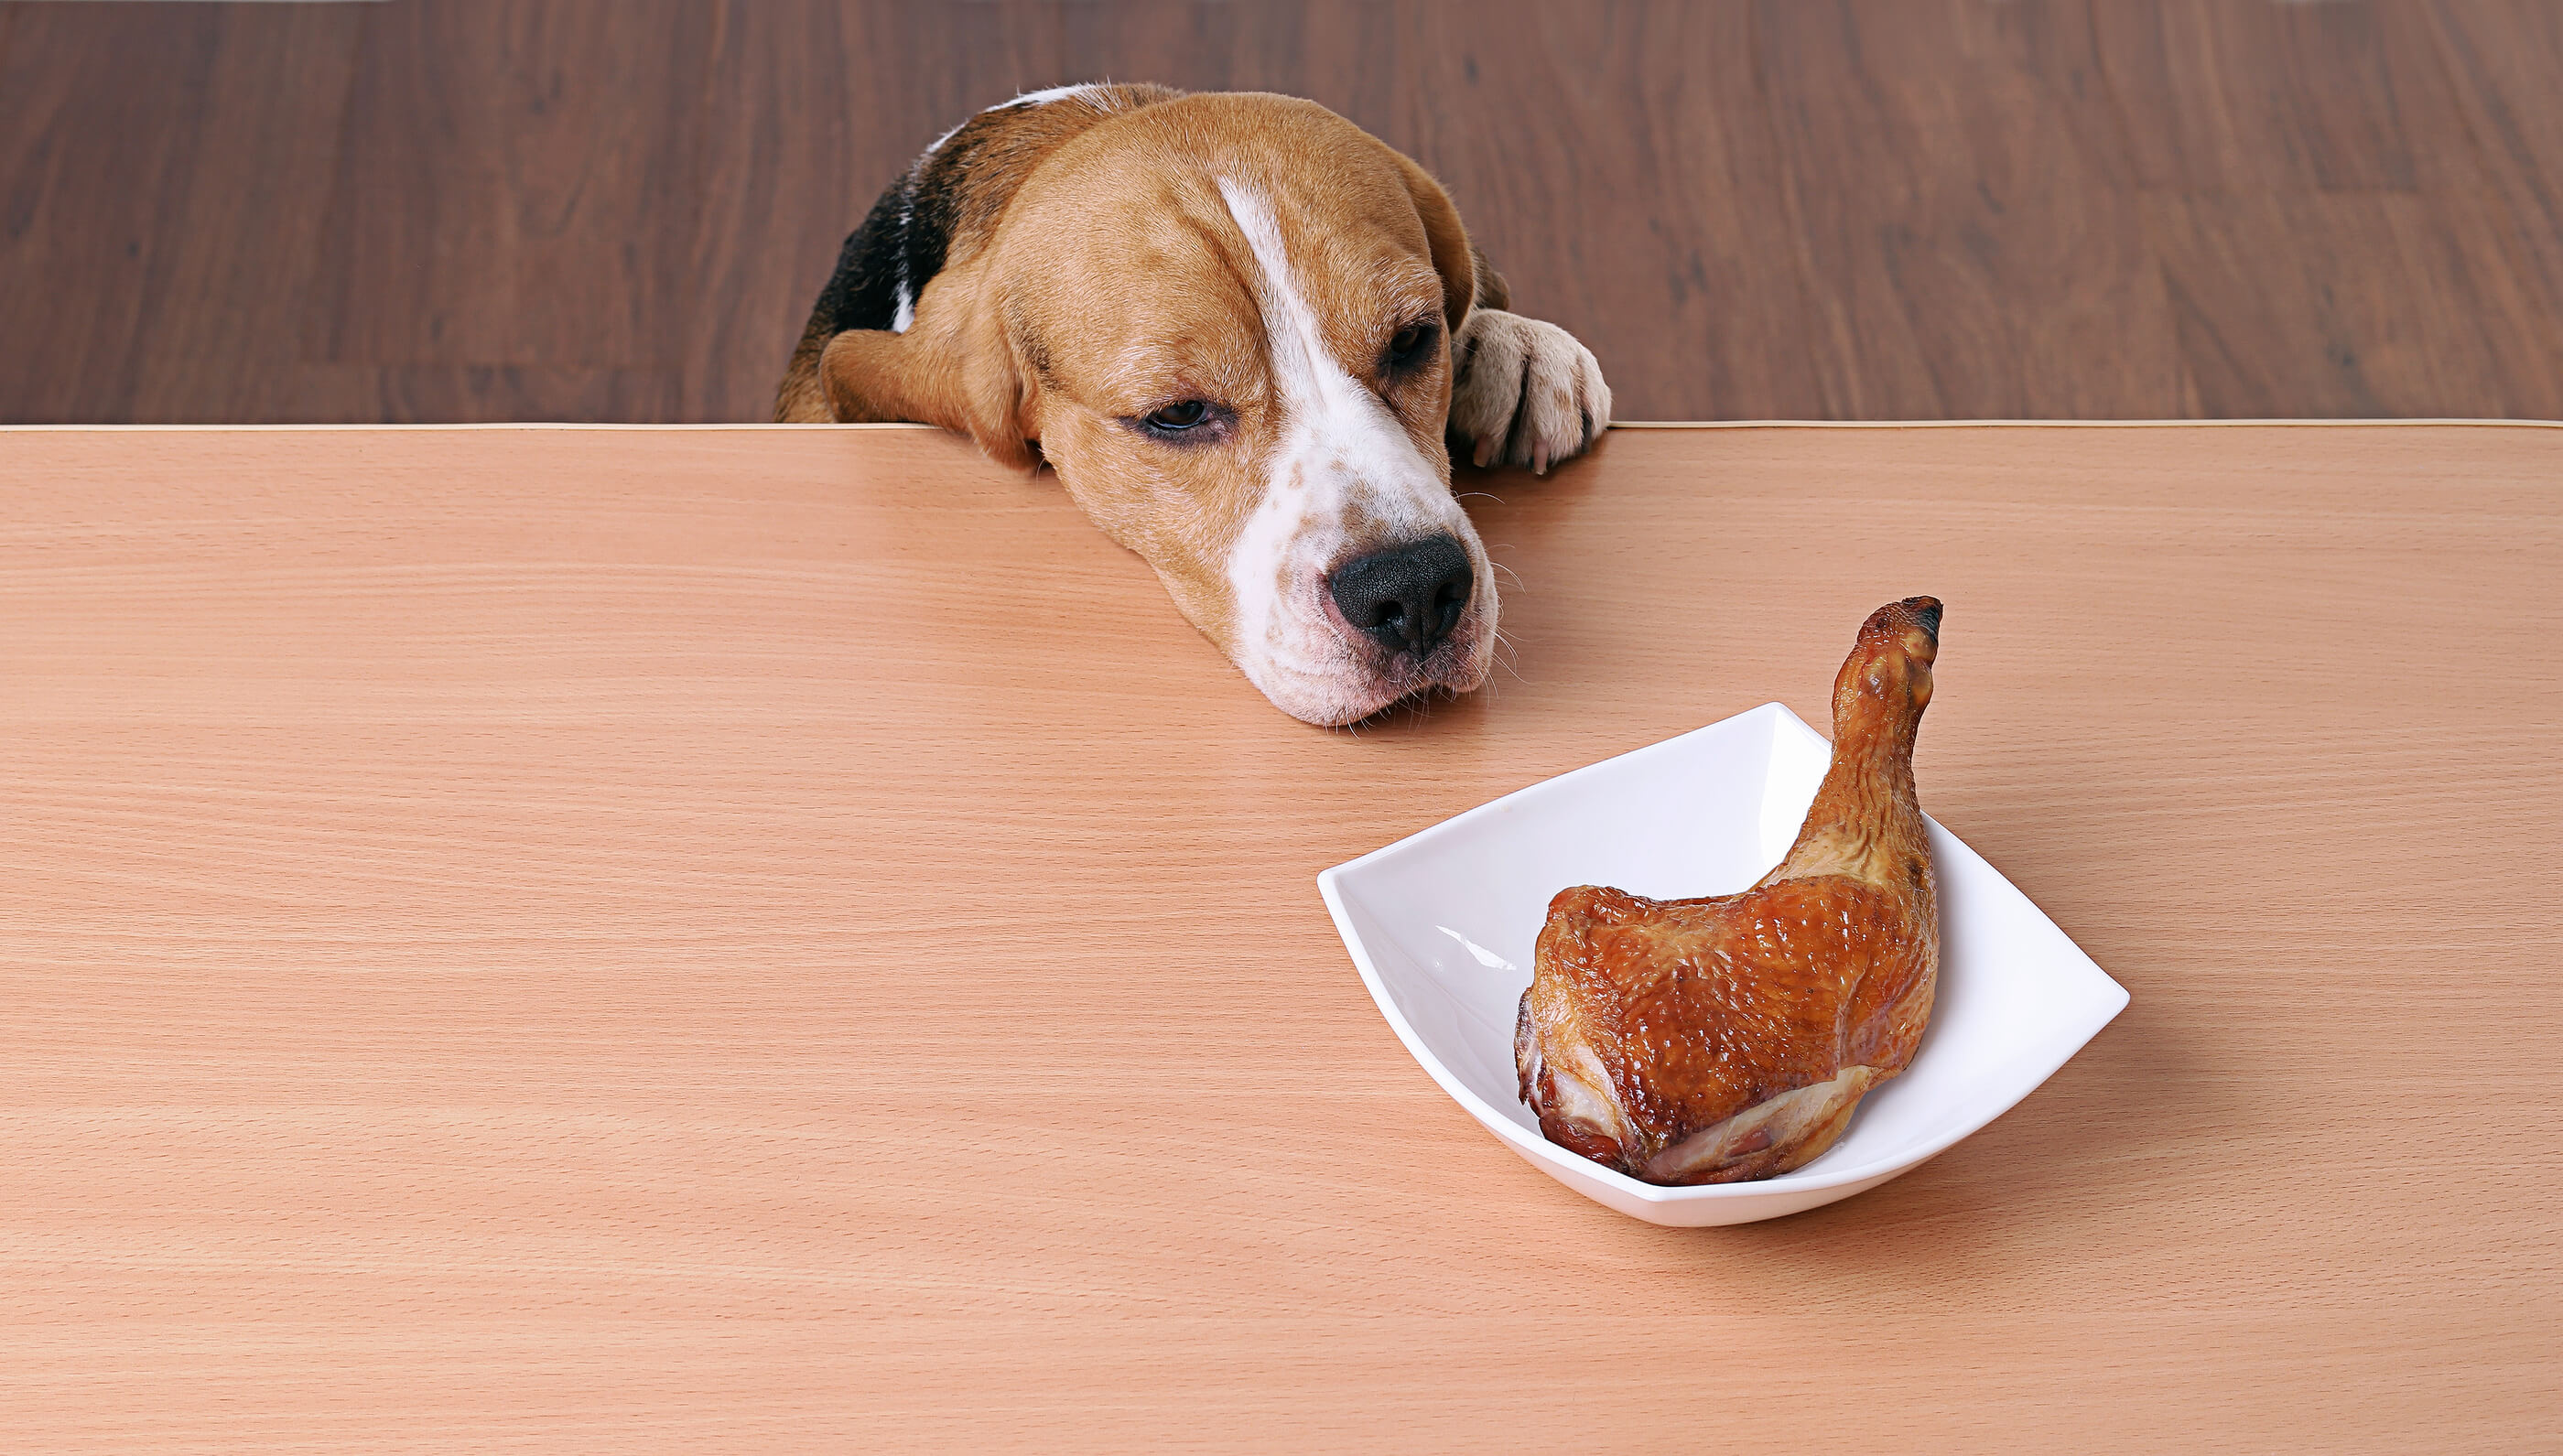 dog in front of a plate with a chicken leg on it